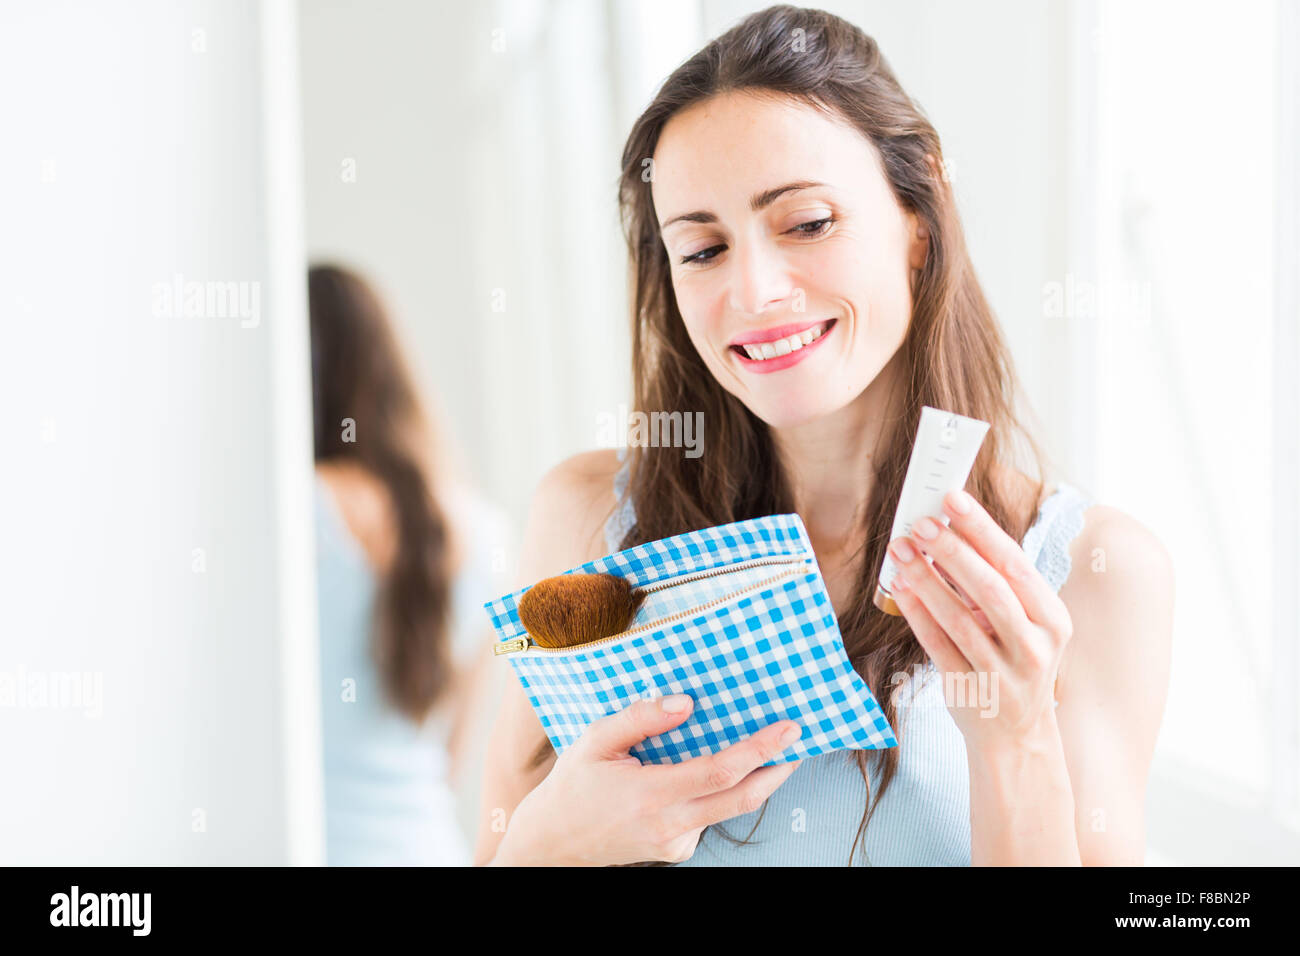 Woman reading the composition of cosmetic product. - Stock Image